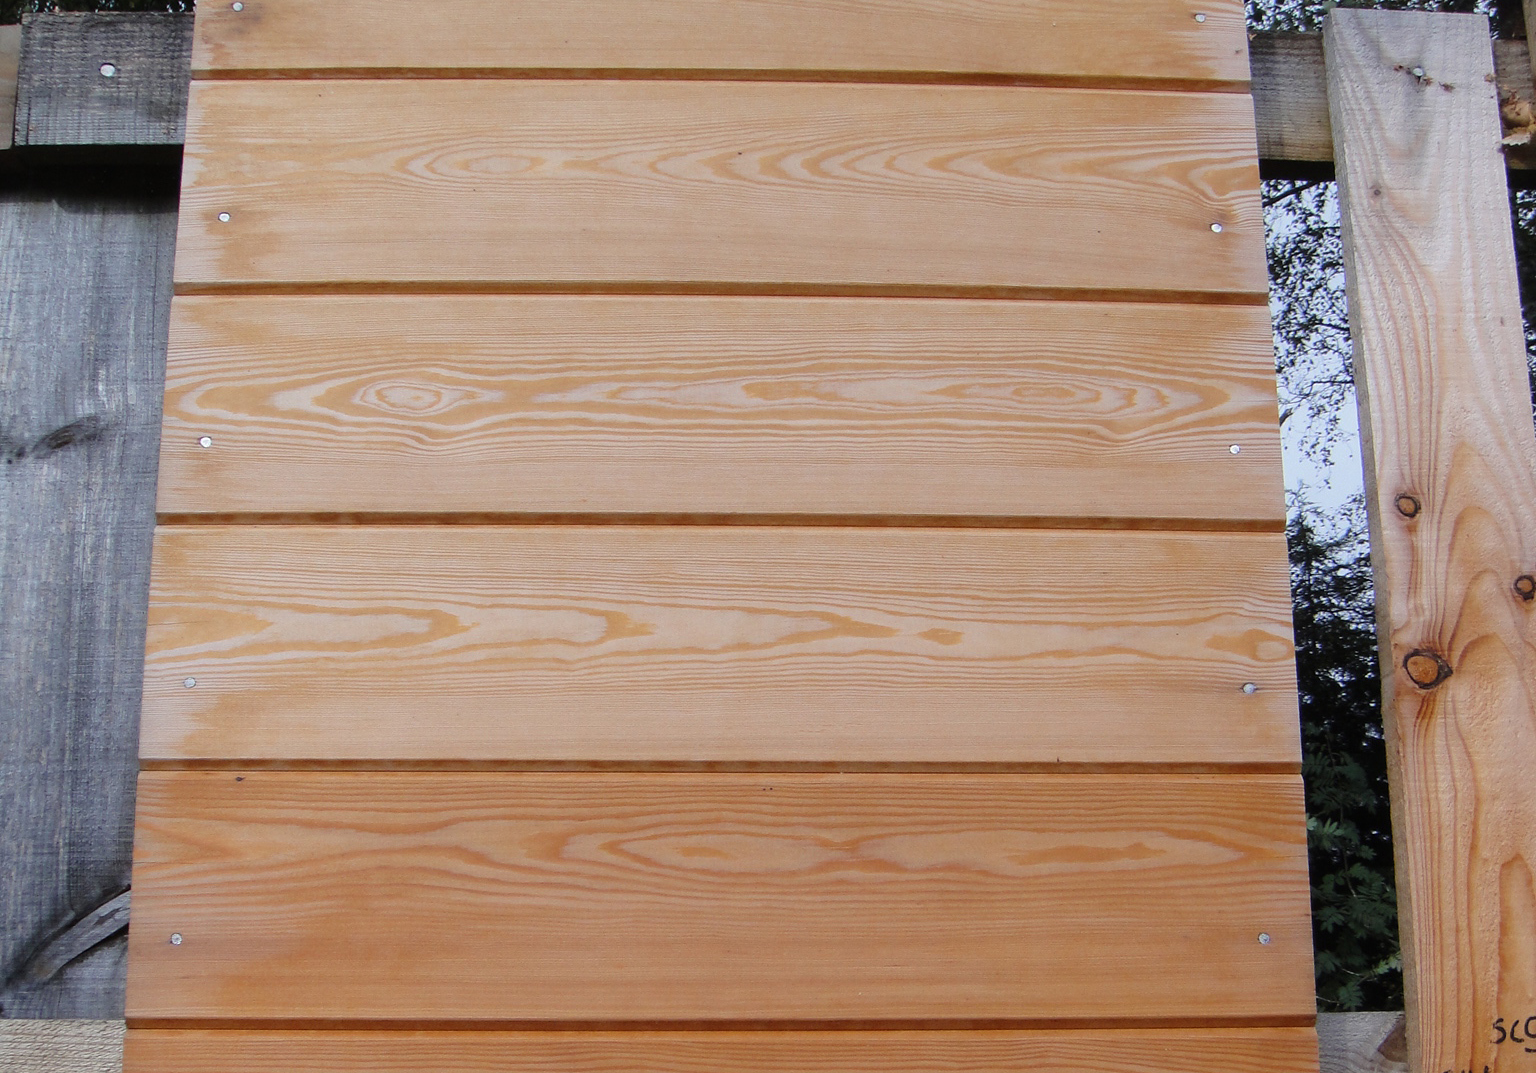 The Aesthetics Is Another Advantage Of Timber Cladding With Relatively Low  Costs In Comparison To Other Cladding Solutions.